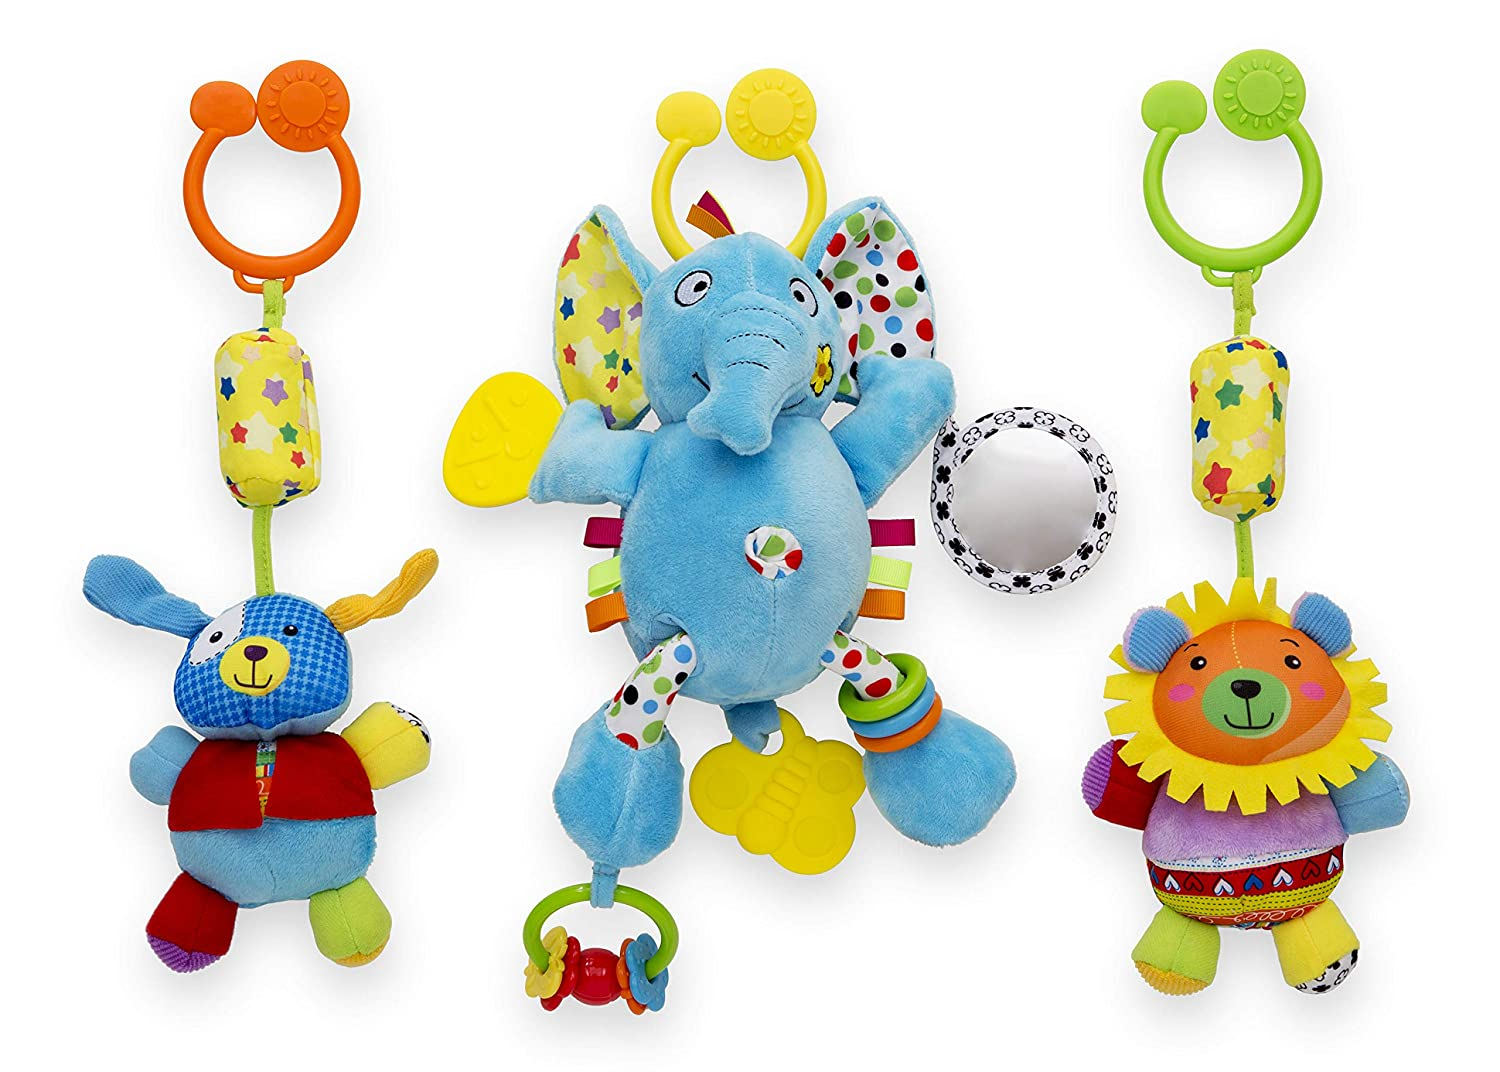 Delta Children Stroller Car Seat Activity and Teething Toys for Babies, Plush Toys Feature Chime Sounds, Vibration, Teethers, Rattles, Mirrors   Sensory Motor Skills Development, 3-Piece Set, Elephant